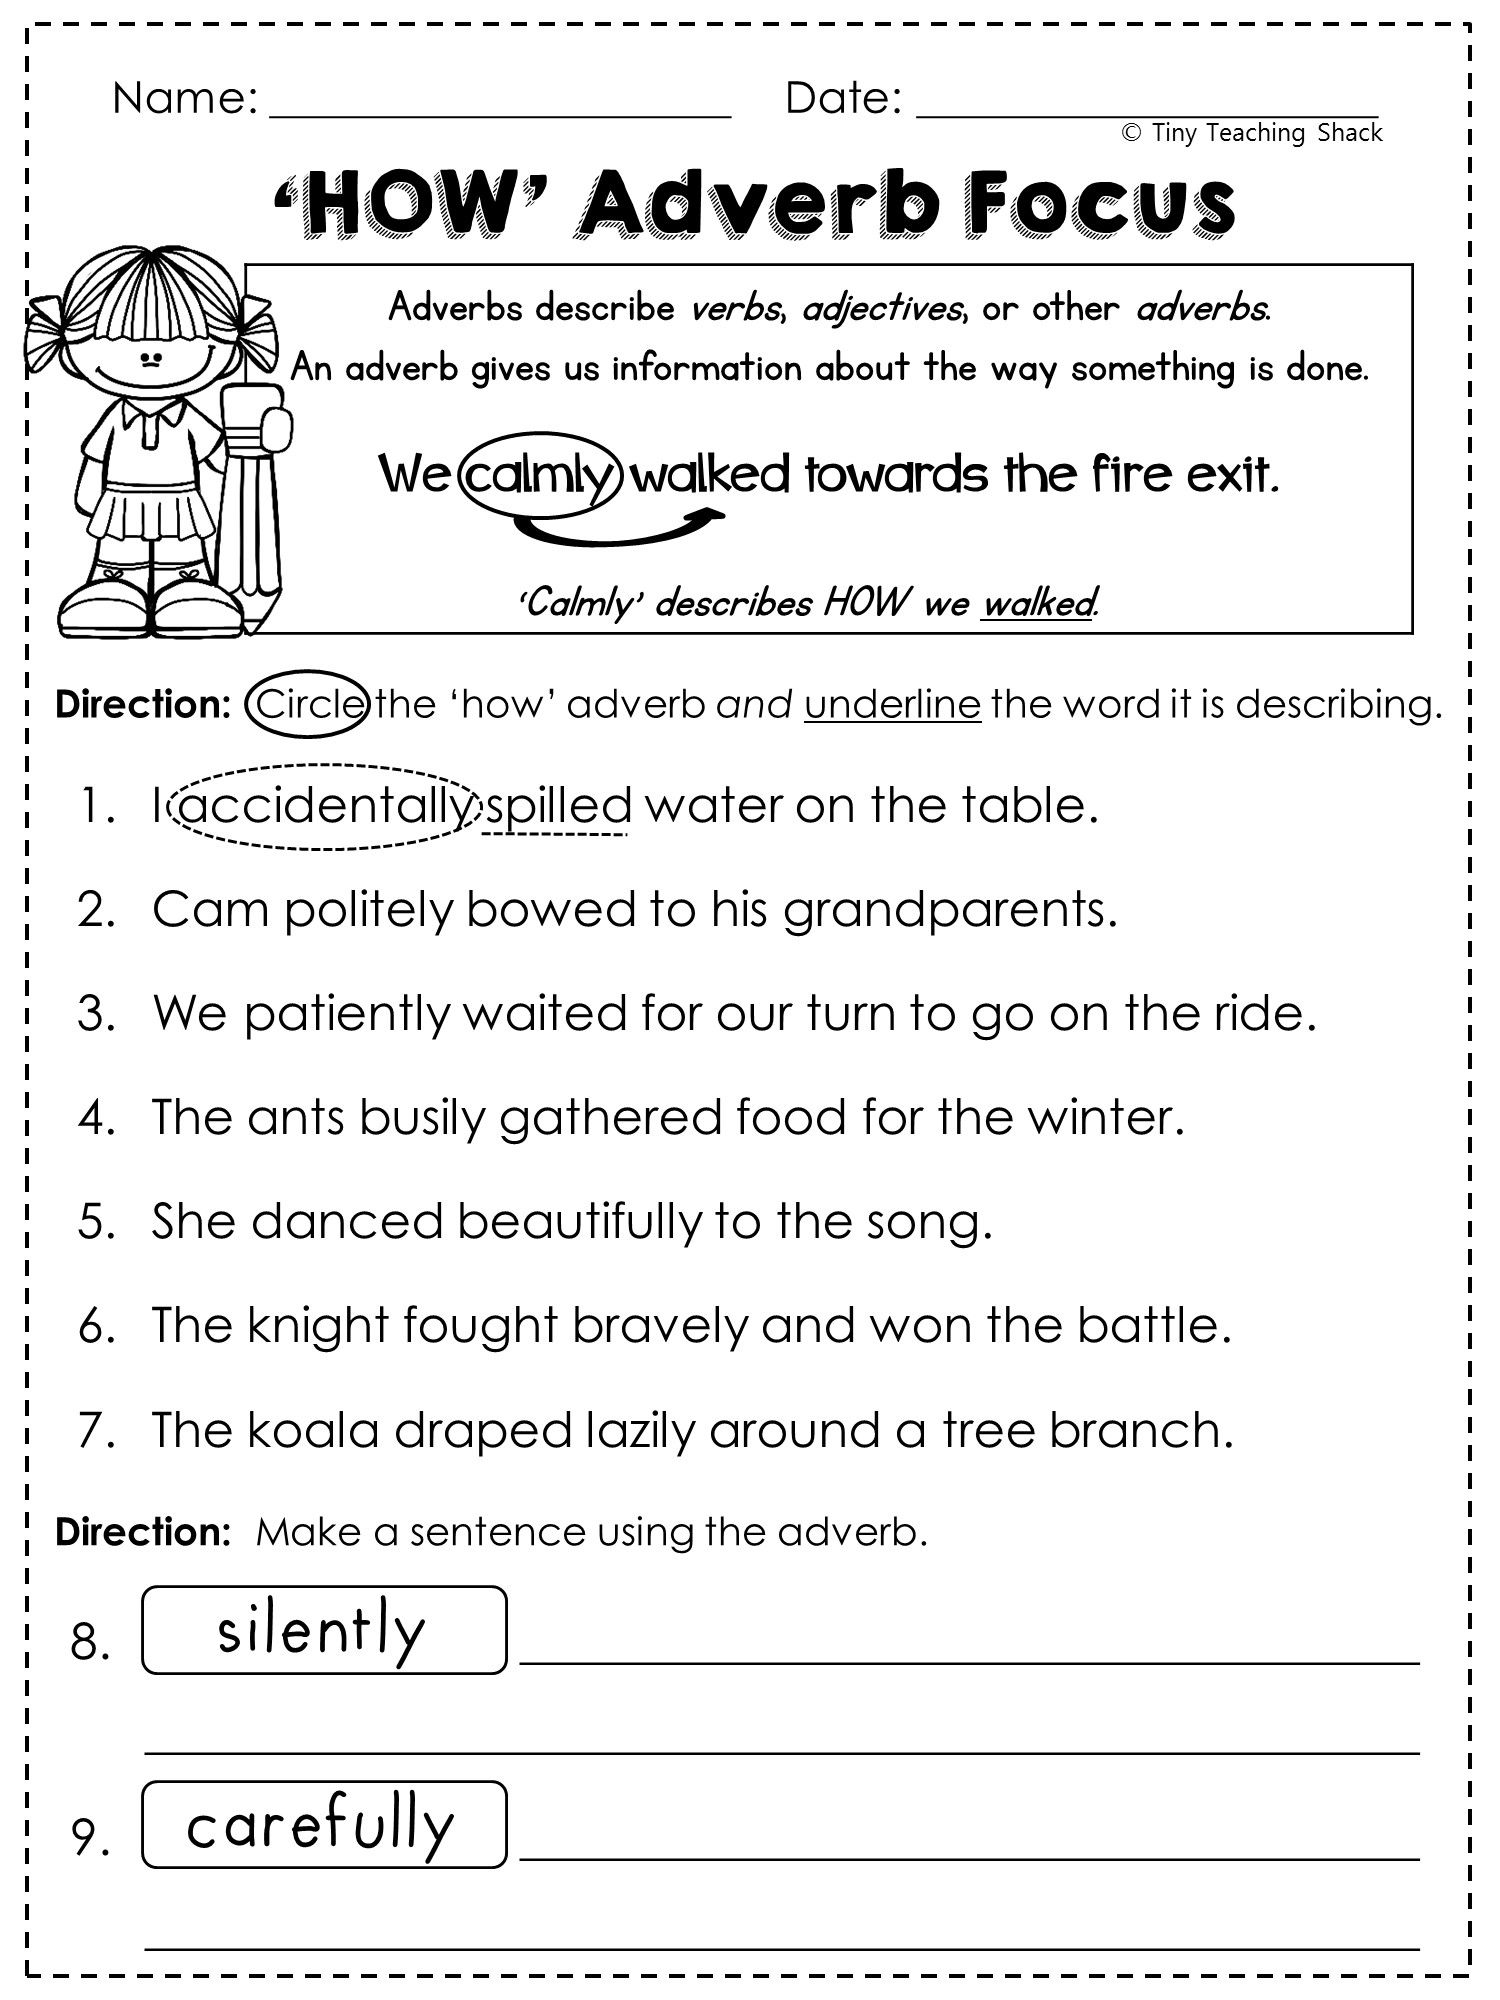 hight resolution of free adverb worksheet   Language arts worksheets